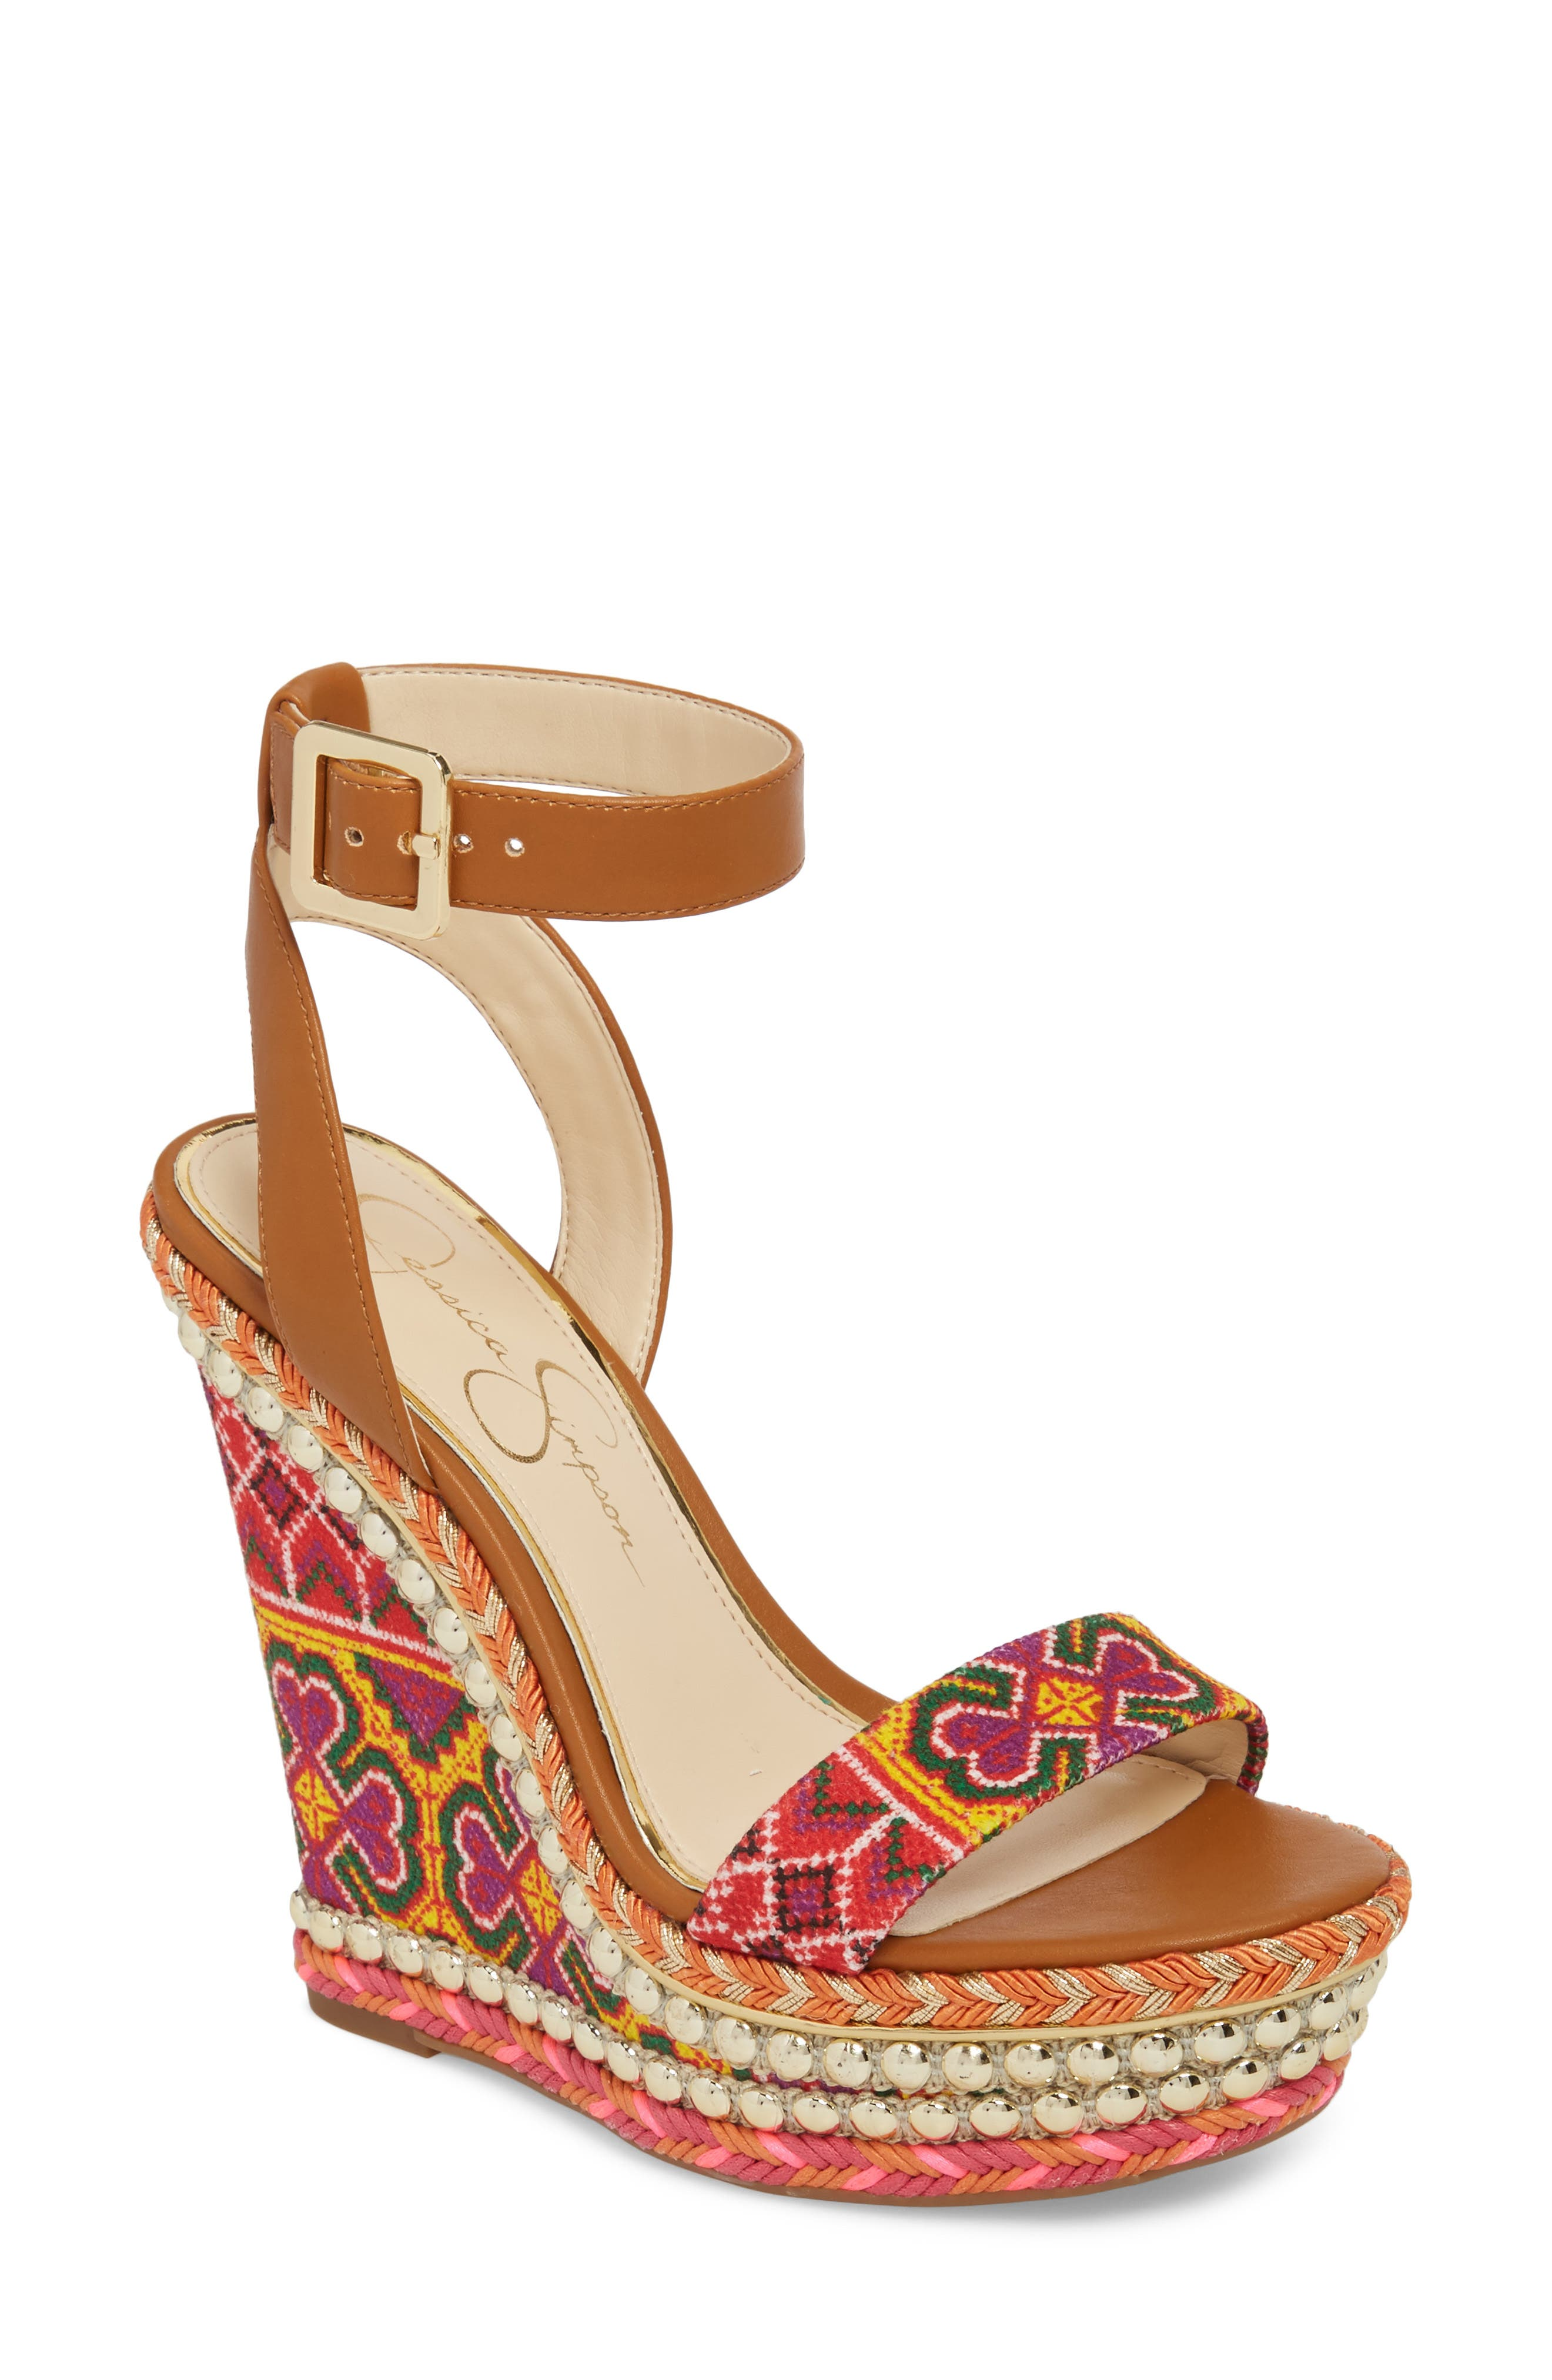 Alinda Embellished Wedge Sandal,                             Main thumbnail 1, color,                             Red Multi